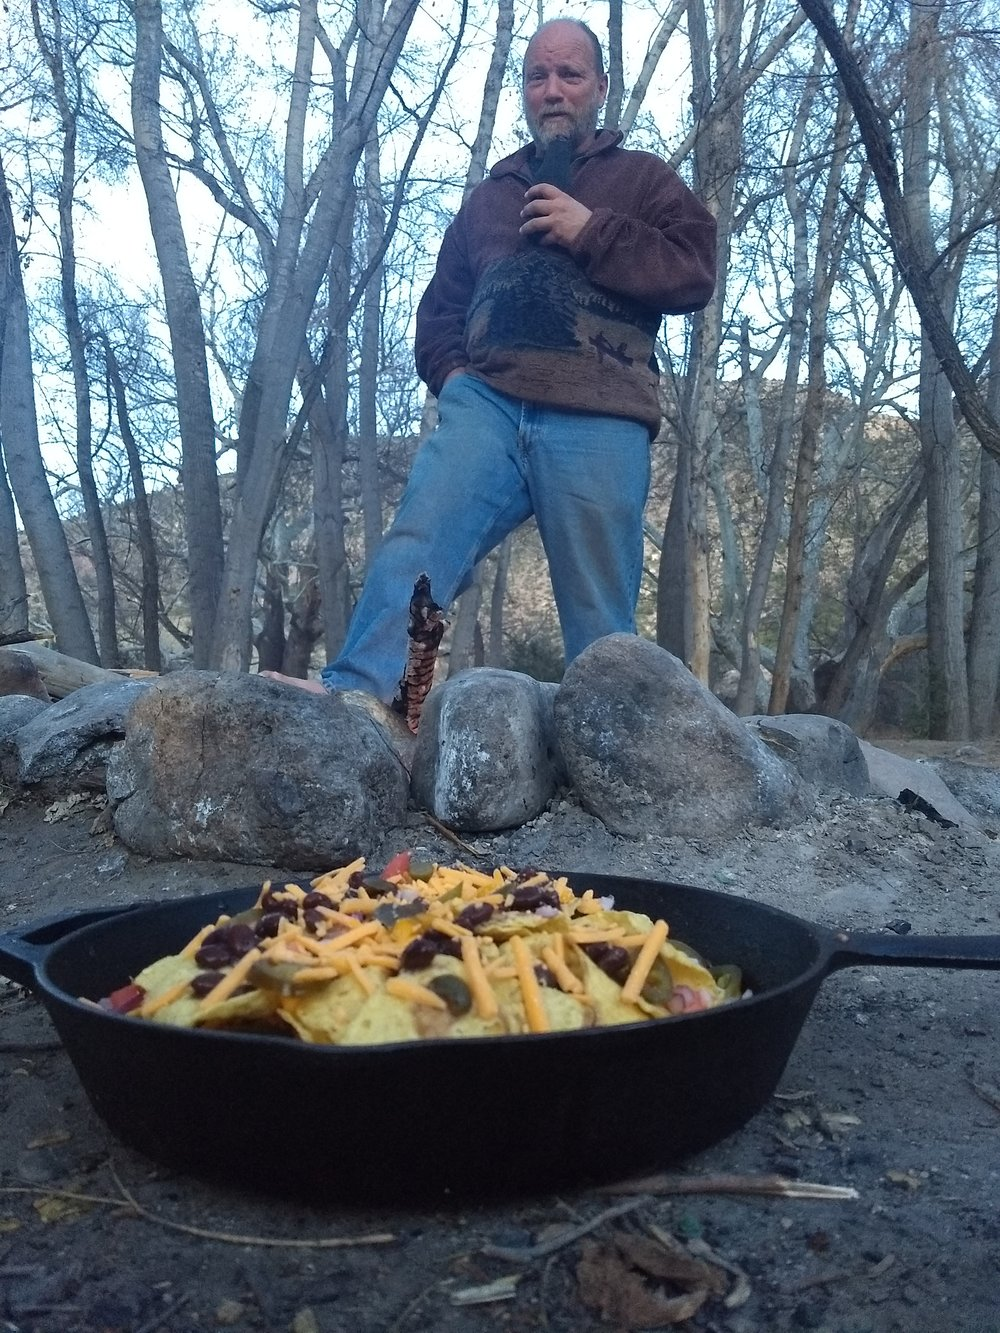 Our main man, Greg, patiently awaiting campfire nachos at Brock Canyon.